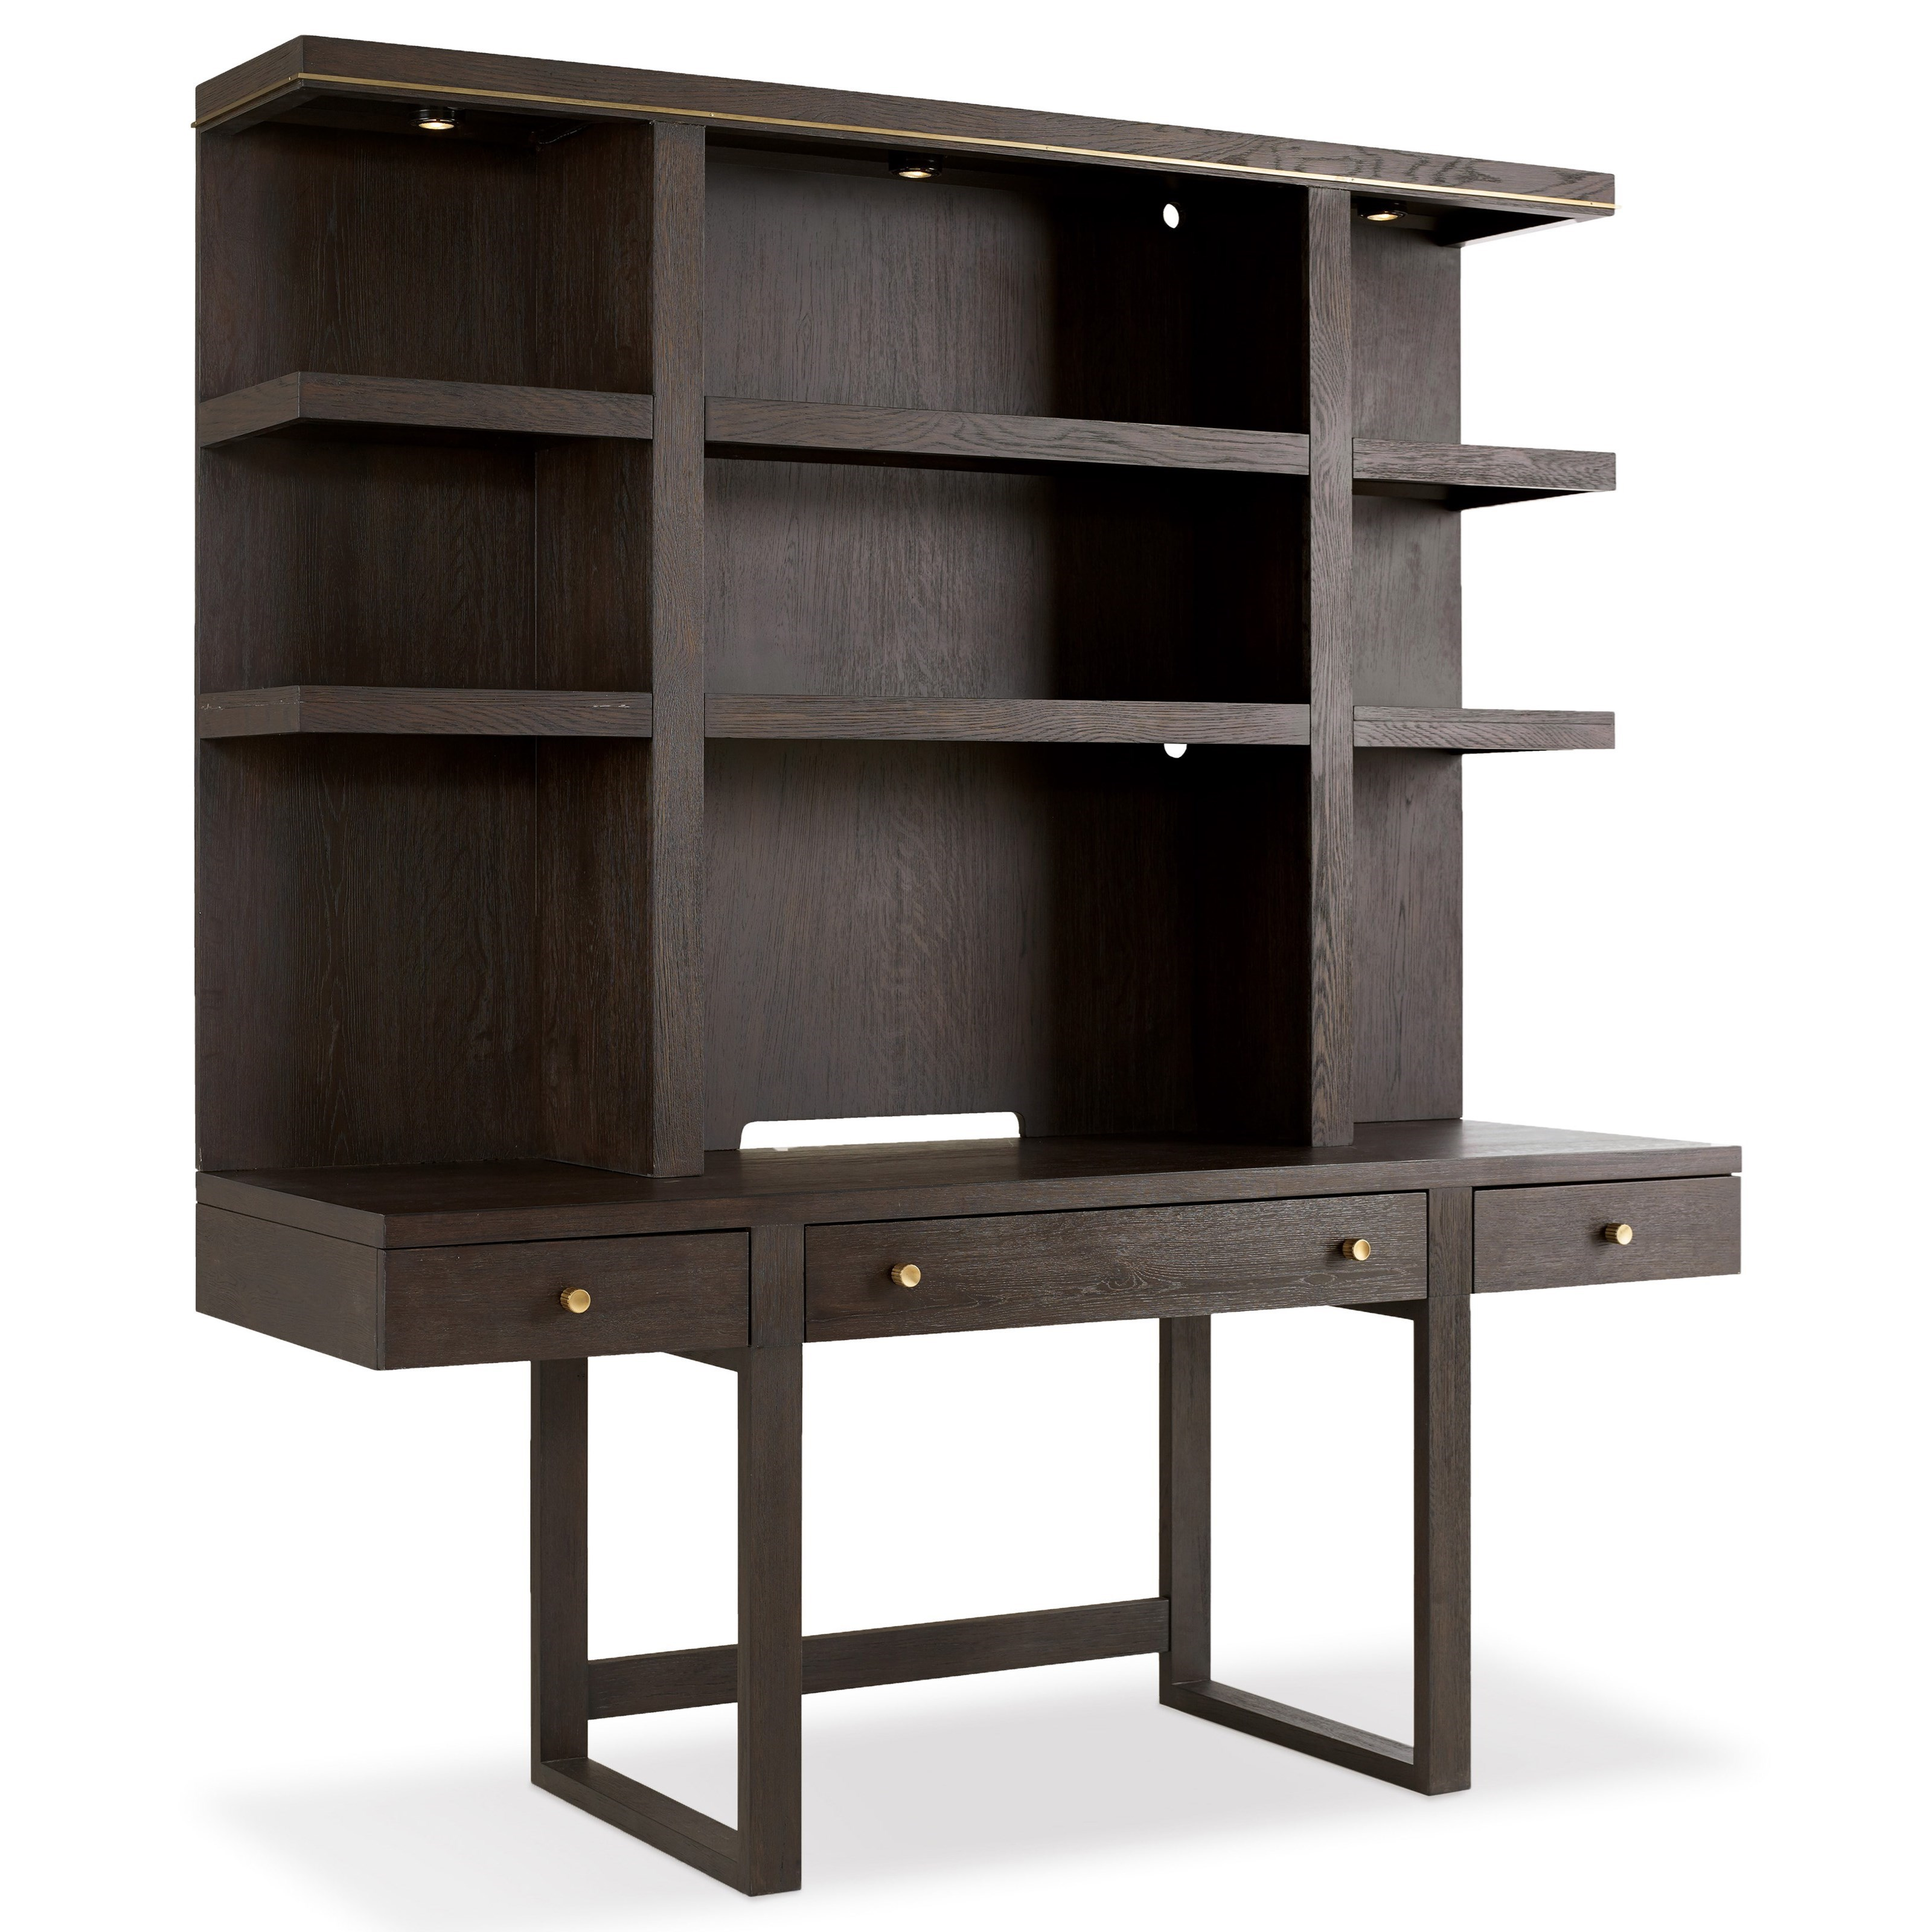 Hooker furniture curata modern wooden wall desk mueller